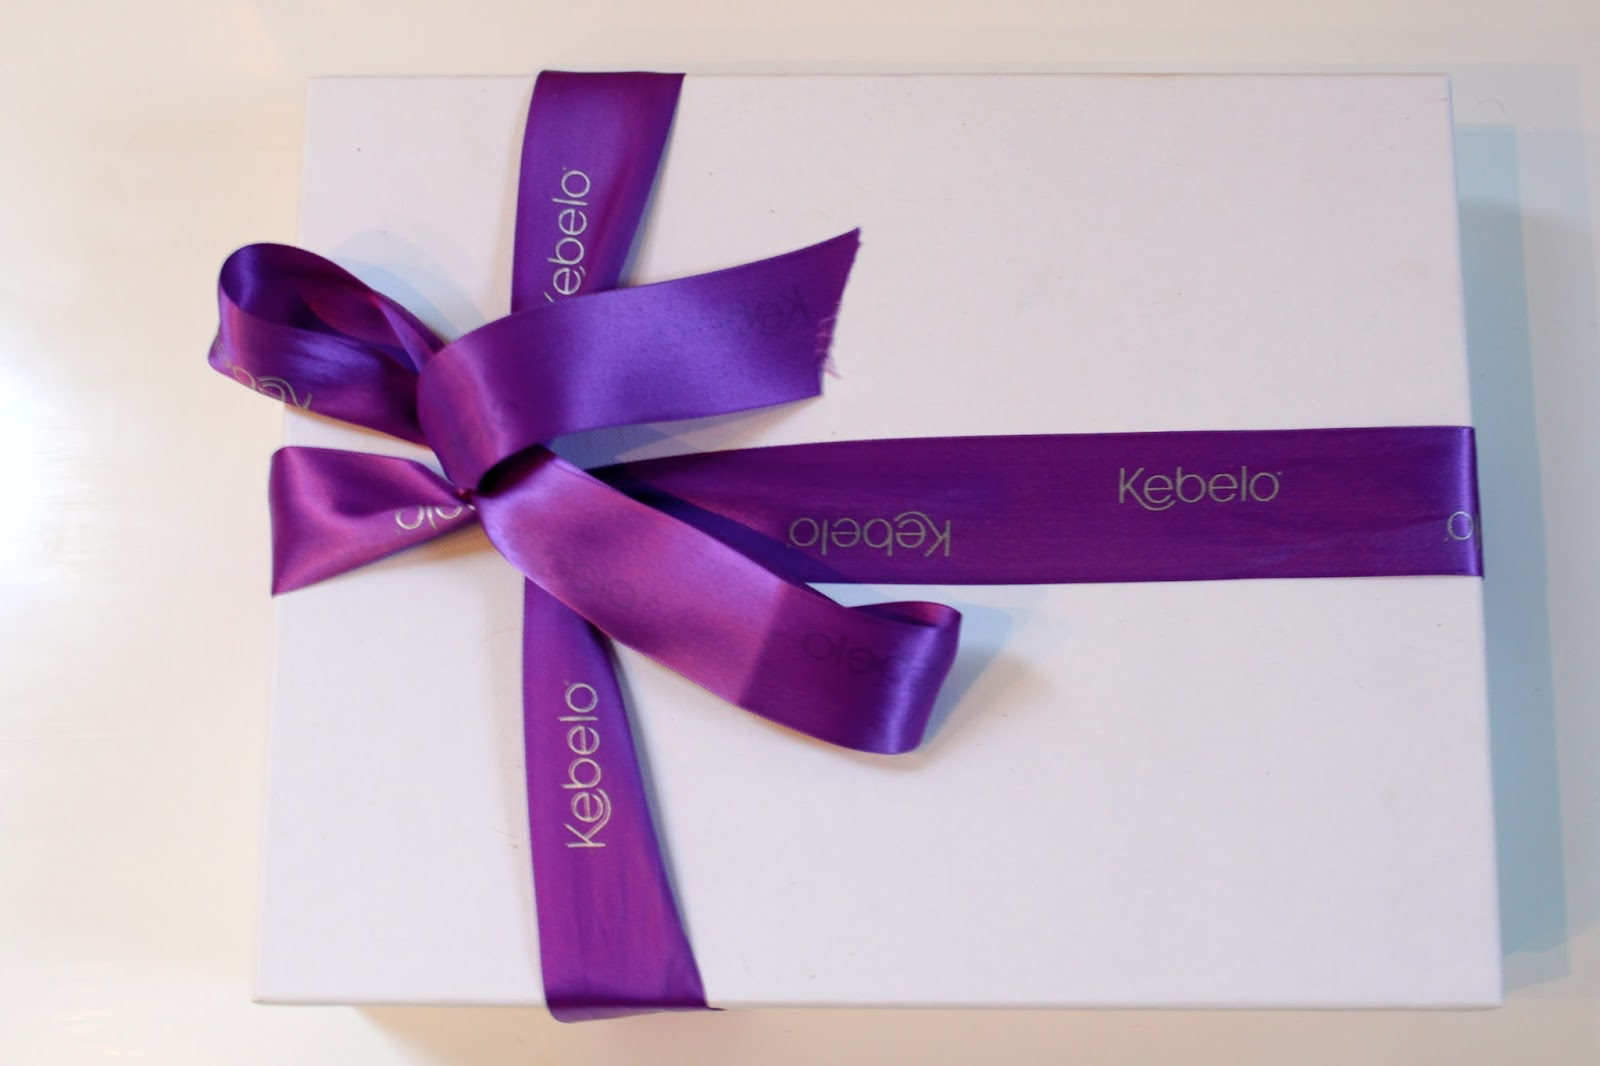 Kebelo Hair Products - the Foundation of Beautiful Hair